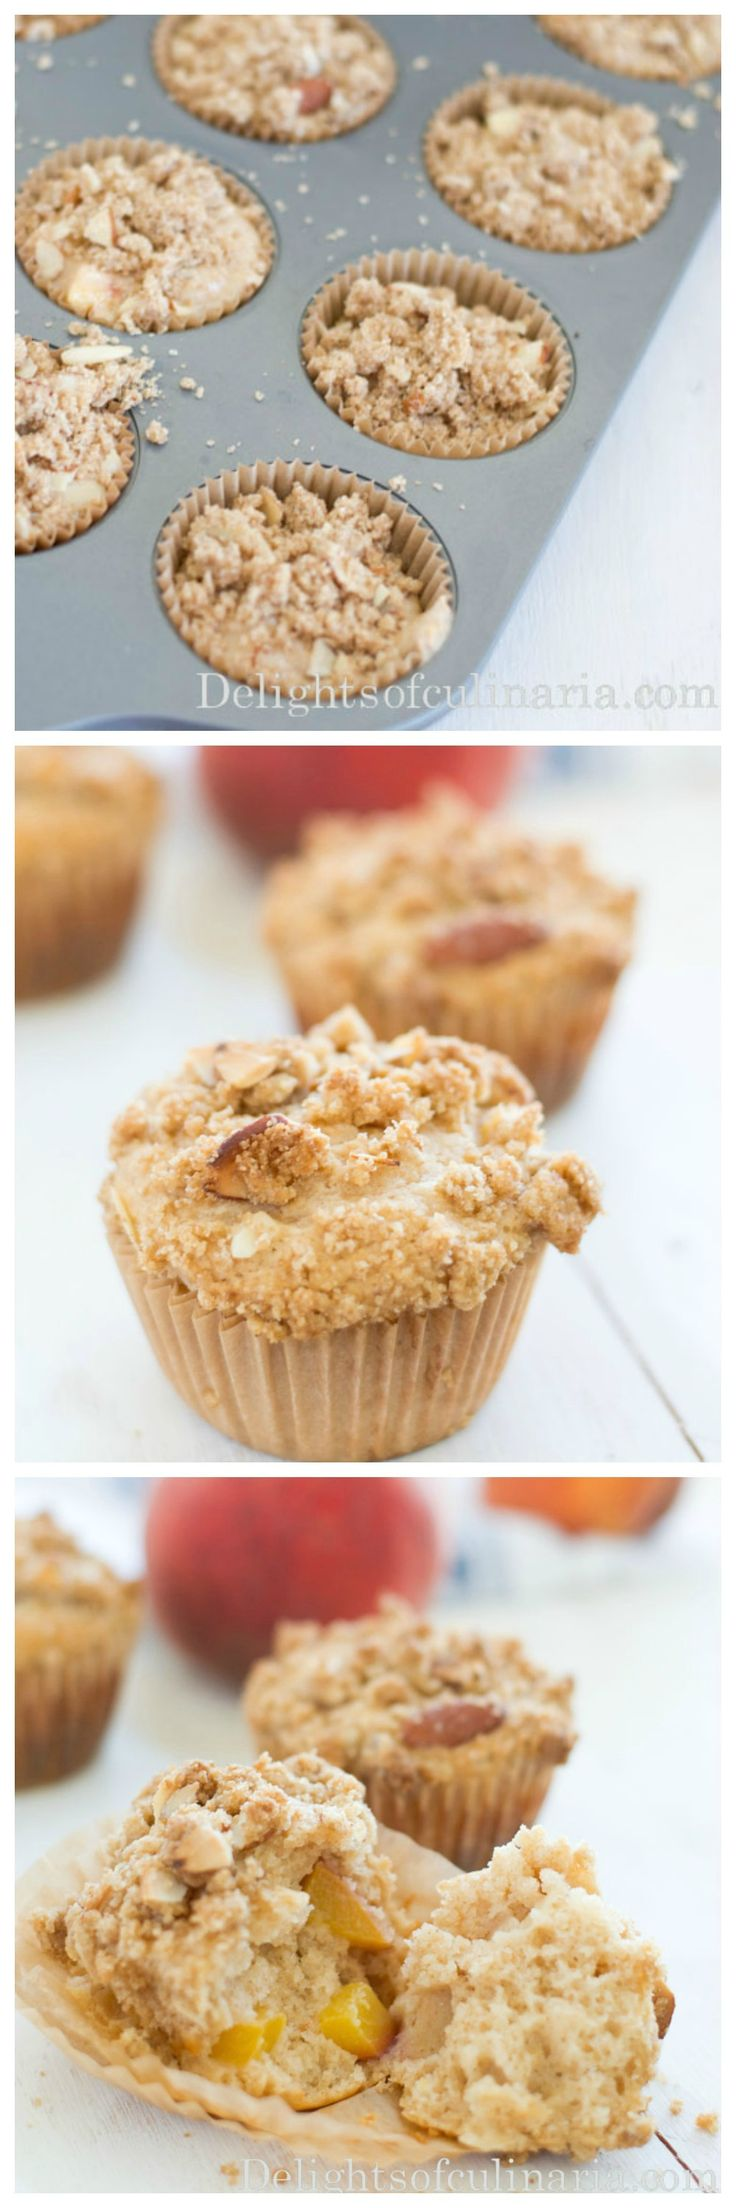 Peach muffins - tasty but i would modify the crumble slightly because it wasn't very crumbly...makes 24